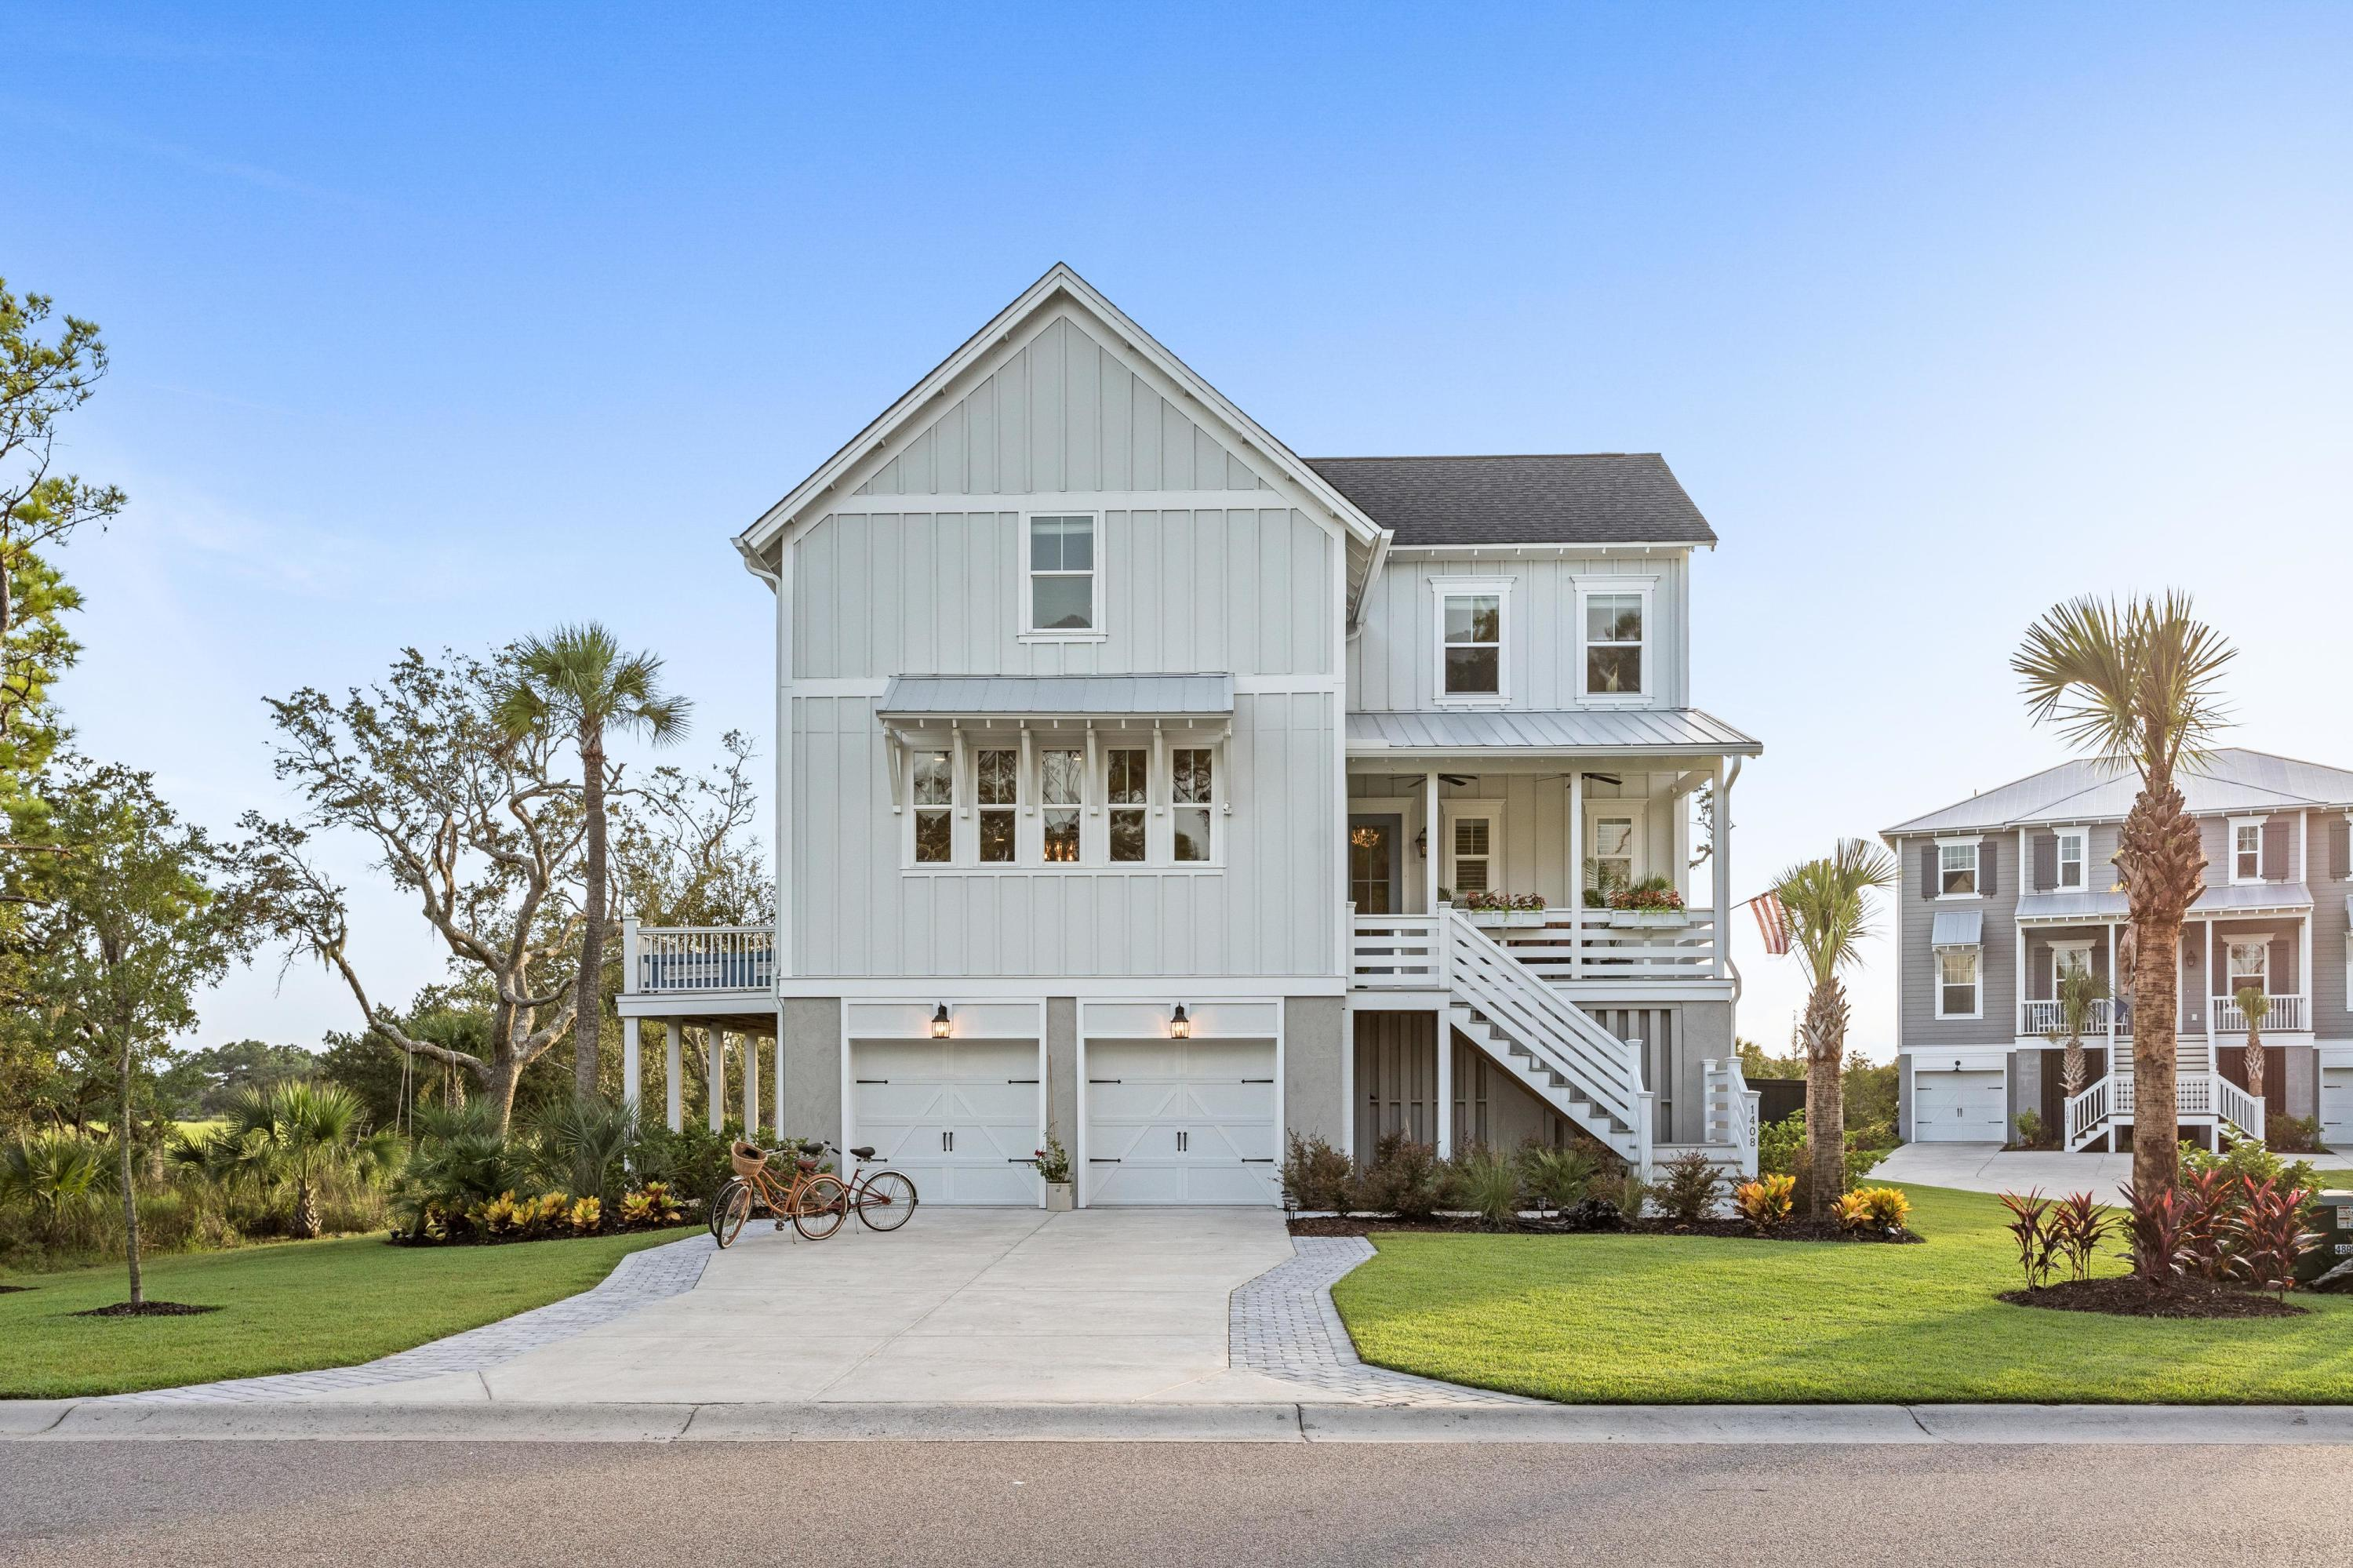 Stratton by the Sound Homes For Sale - 1408 Stratton, Mount Pleasant, SC - 10